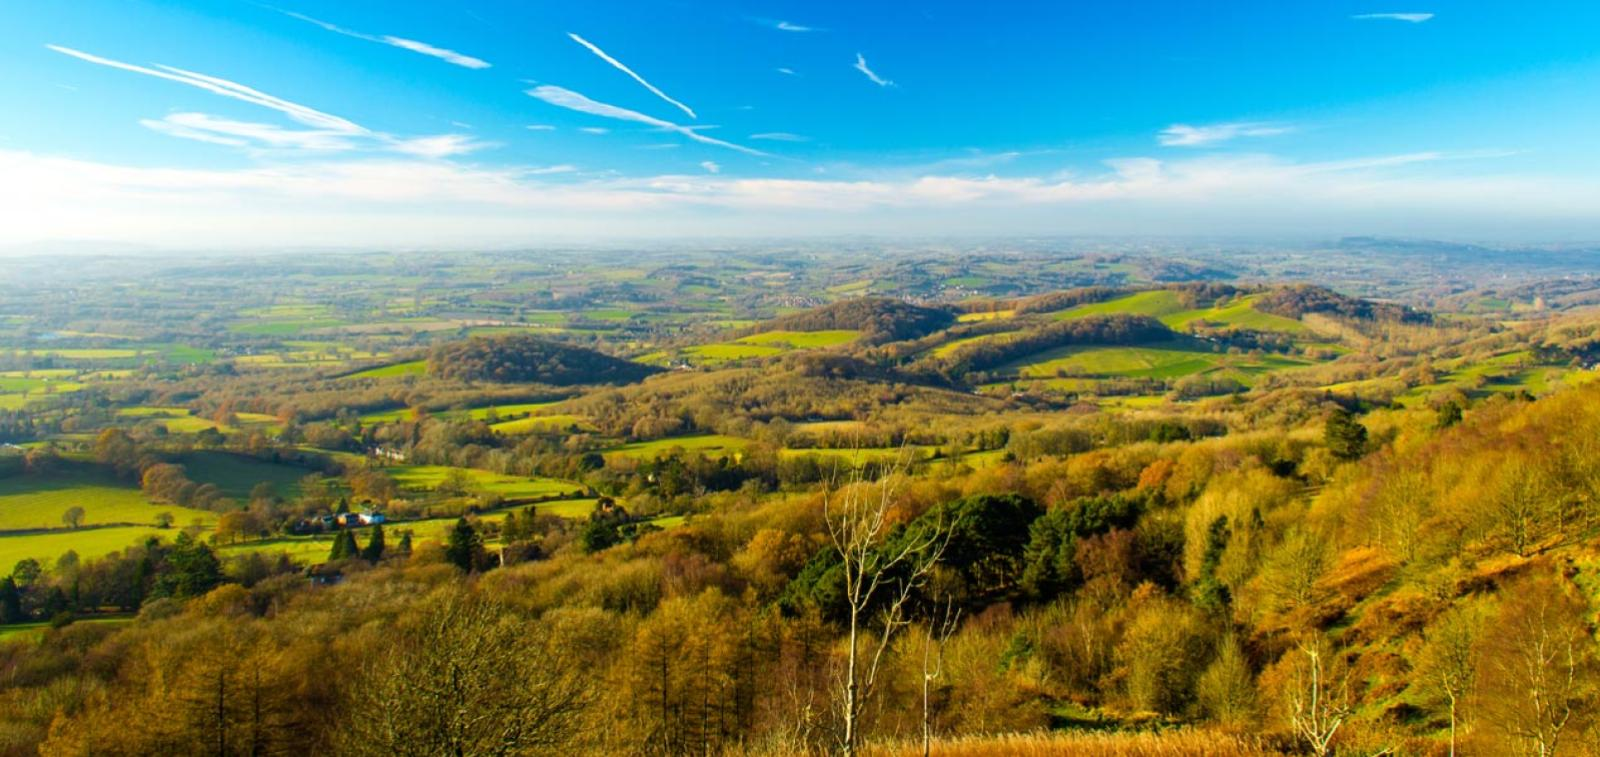 View from the Malvern Hills near to the Broadlands Drive development